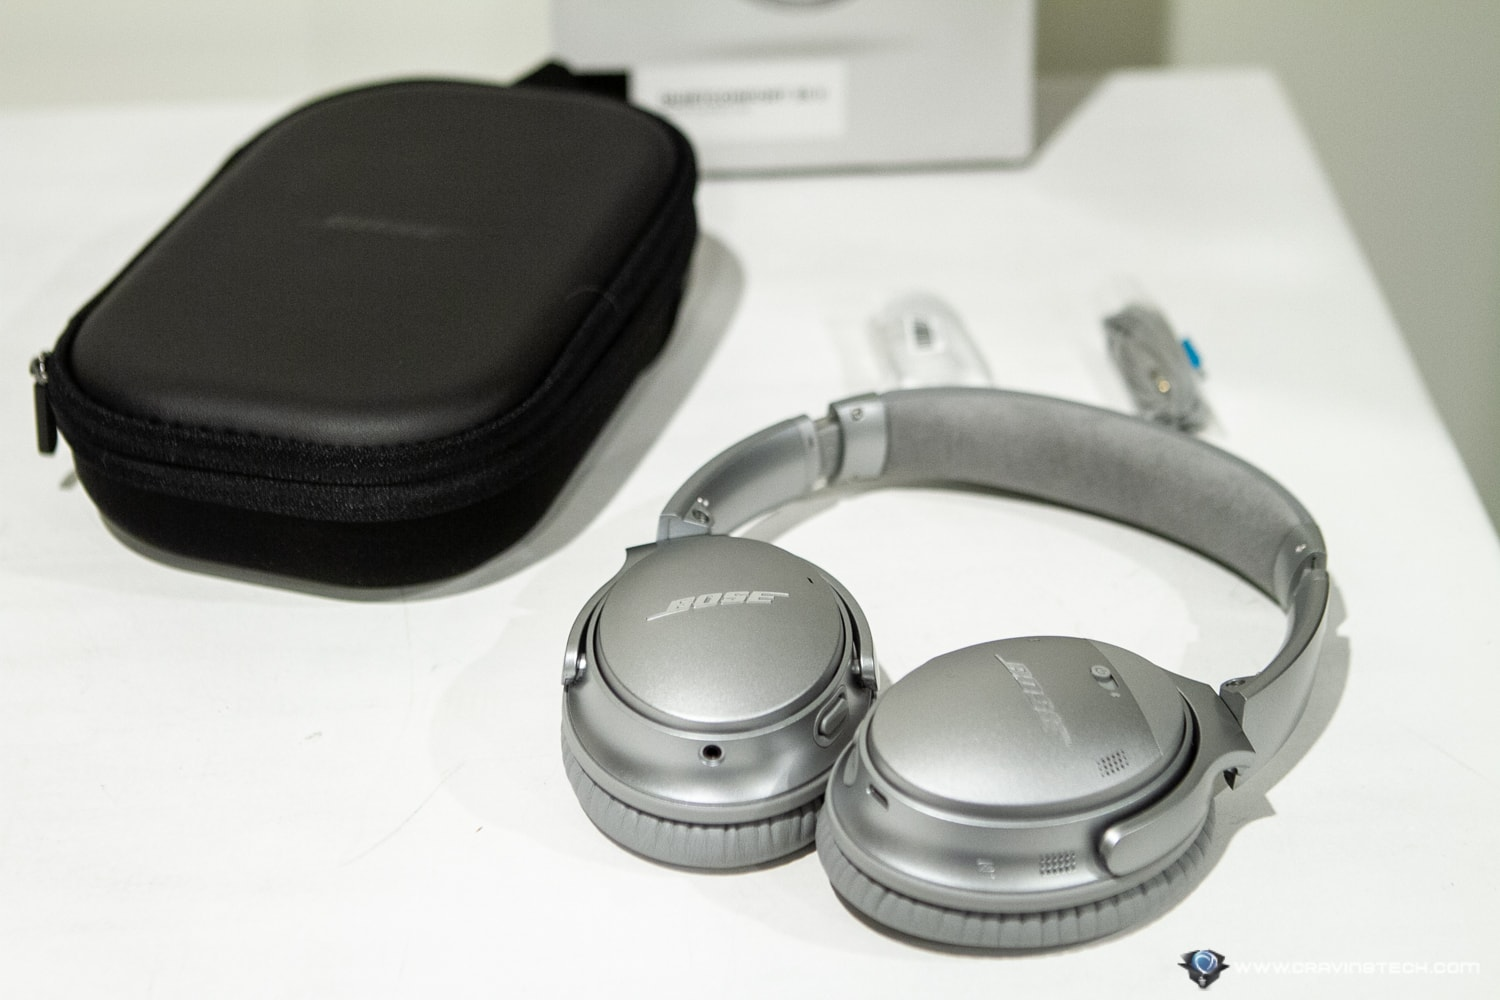 Bose QC35 II Review - Packaging